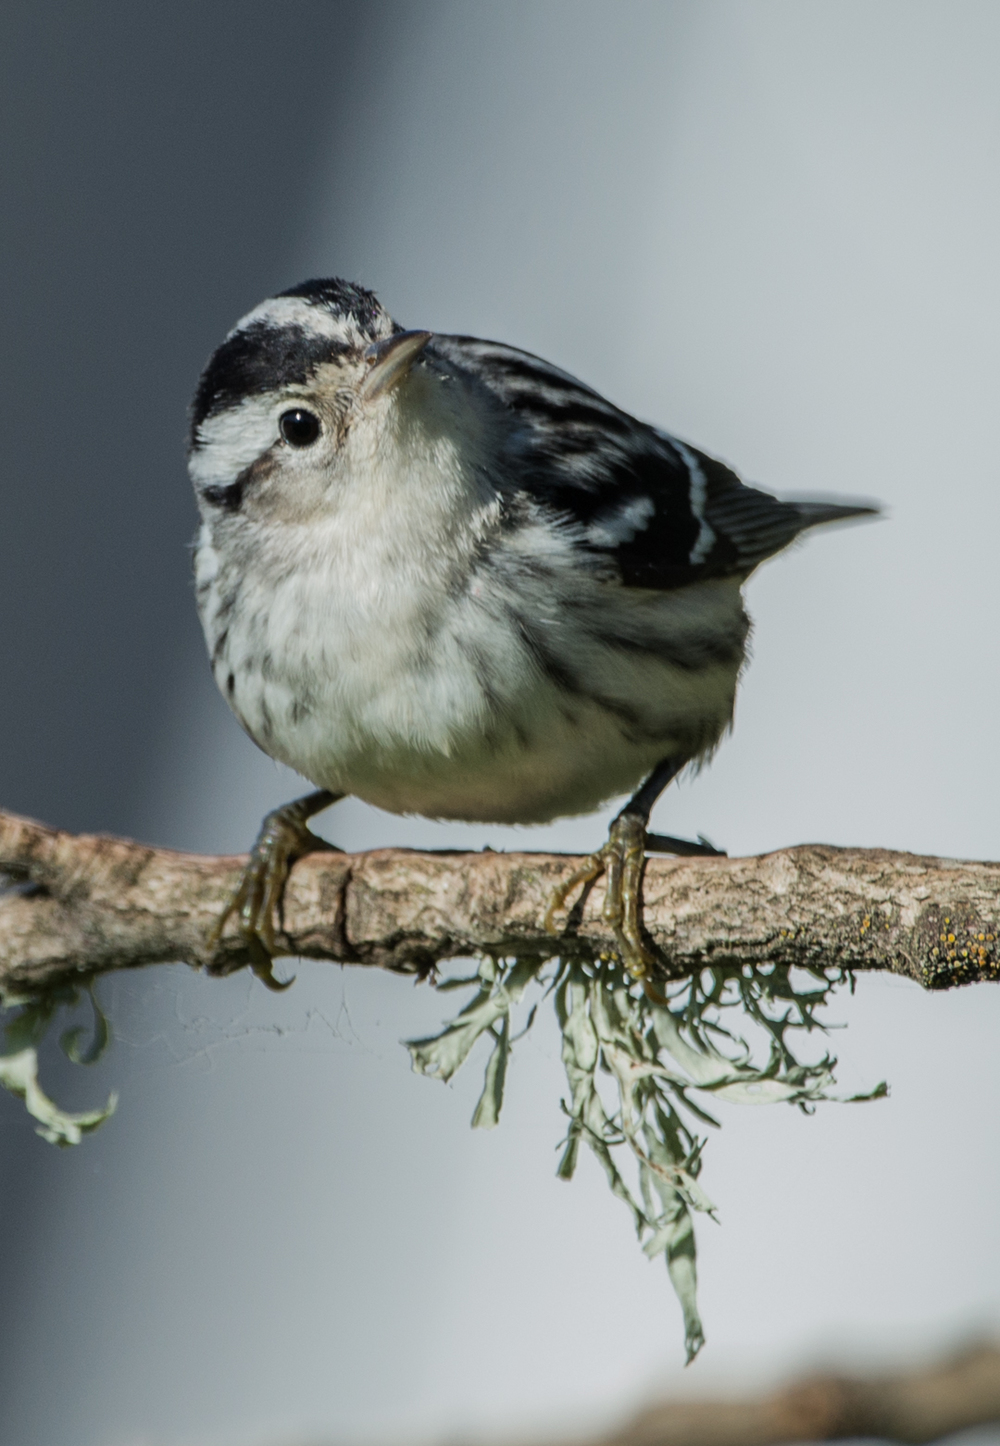 Featured Photo 17: Black-and-White warbler (Mniotilta varia)  EQ: D800 600mm f/4 VR on    Taken: 1-2-15 12:16  Setting: 600mm, 1/1000s, f/5.6, ISO360    Condition: Sunny but in shade